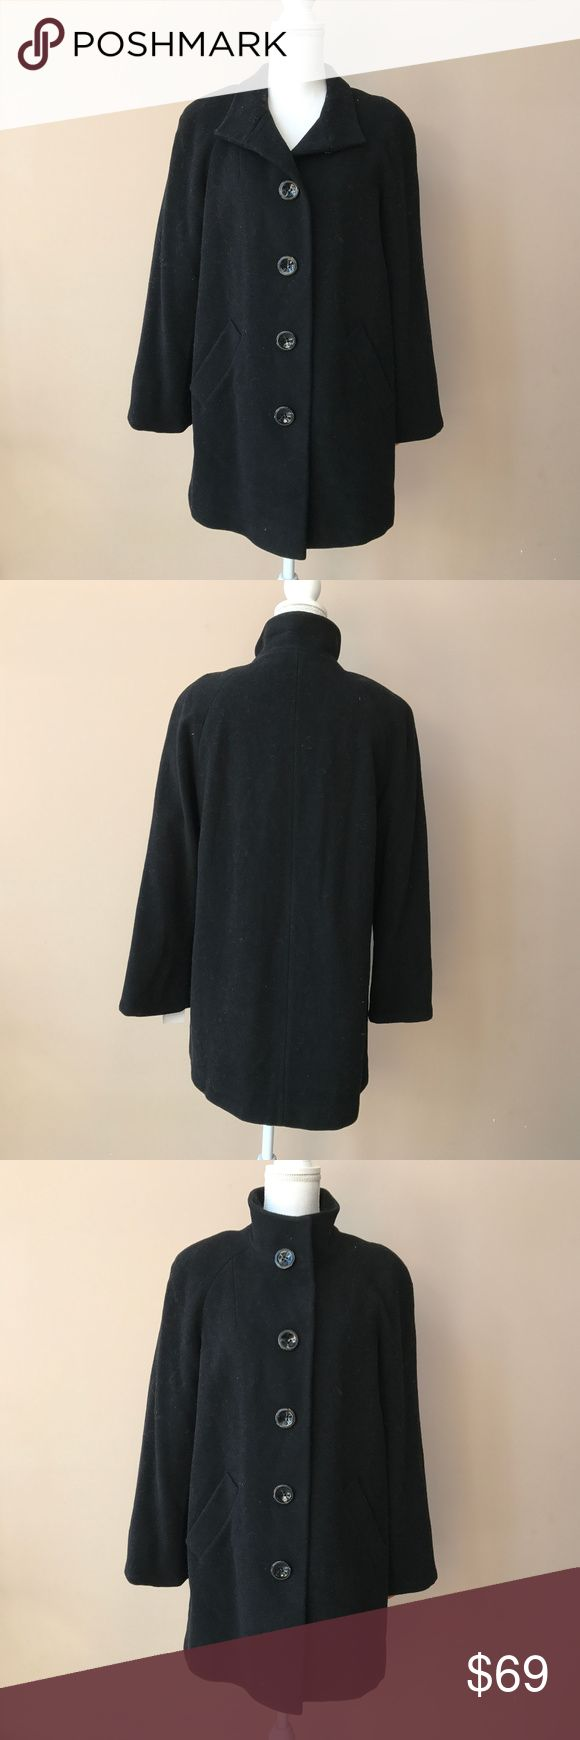 """NEW Appleseed's Balmacaan Black Wool Coat 8P a411 NEW Wool Balmacaan Women's Black Jacket Walker Raglan Sleeve Coat Appleseeds 8P Brand APPLESEED'S Size 8P. Style CAREER, CASUAL, OUTDOOR. Bust measurements (side to side) * 21"""" Waist measurements (side to side) 22"""" Hips measurements (side to side) 23"""" Leigh (from shoulder to the lowest point) 33"""" Color Black Fabric 60% WOOL BLEND (LINED) 30% polyester, 10% viscose. Tags NOT PRESENT Permanent damages, stains or alterations NONE Condition New…"""